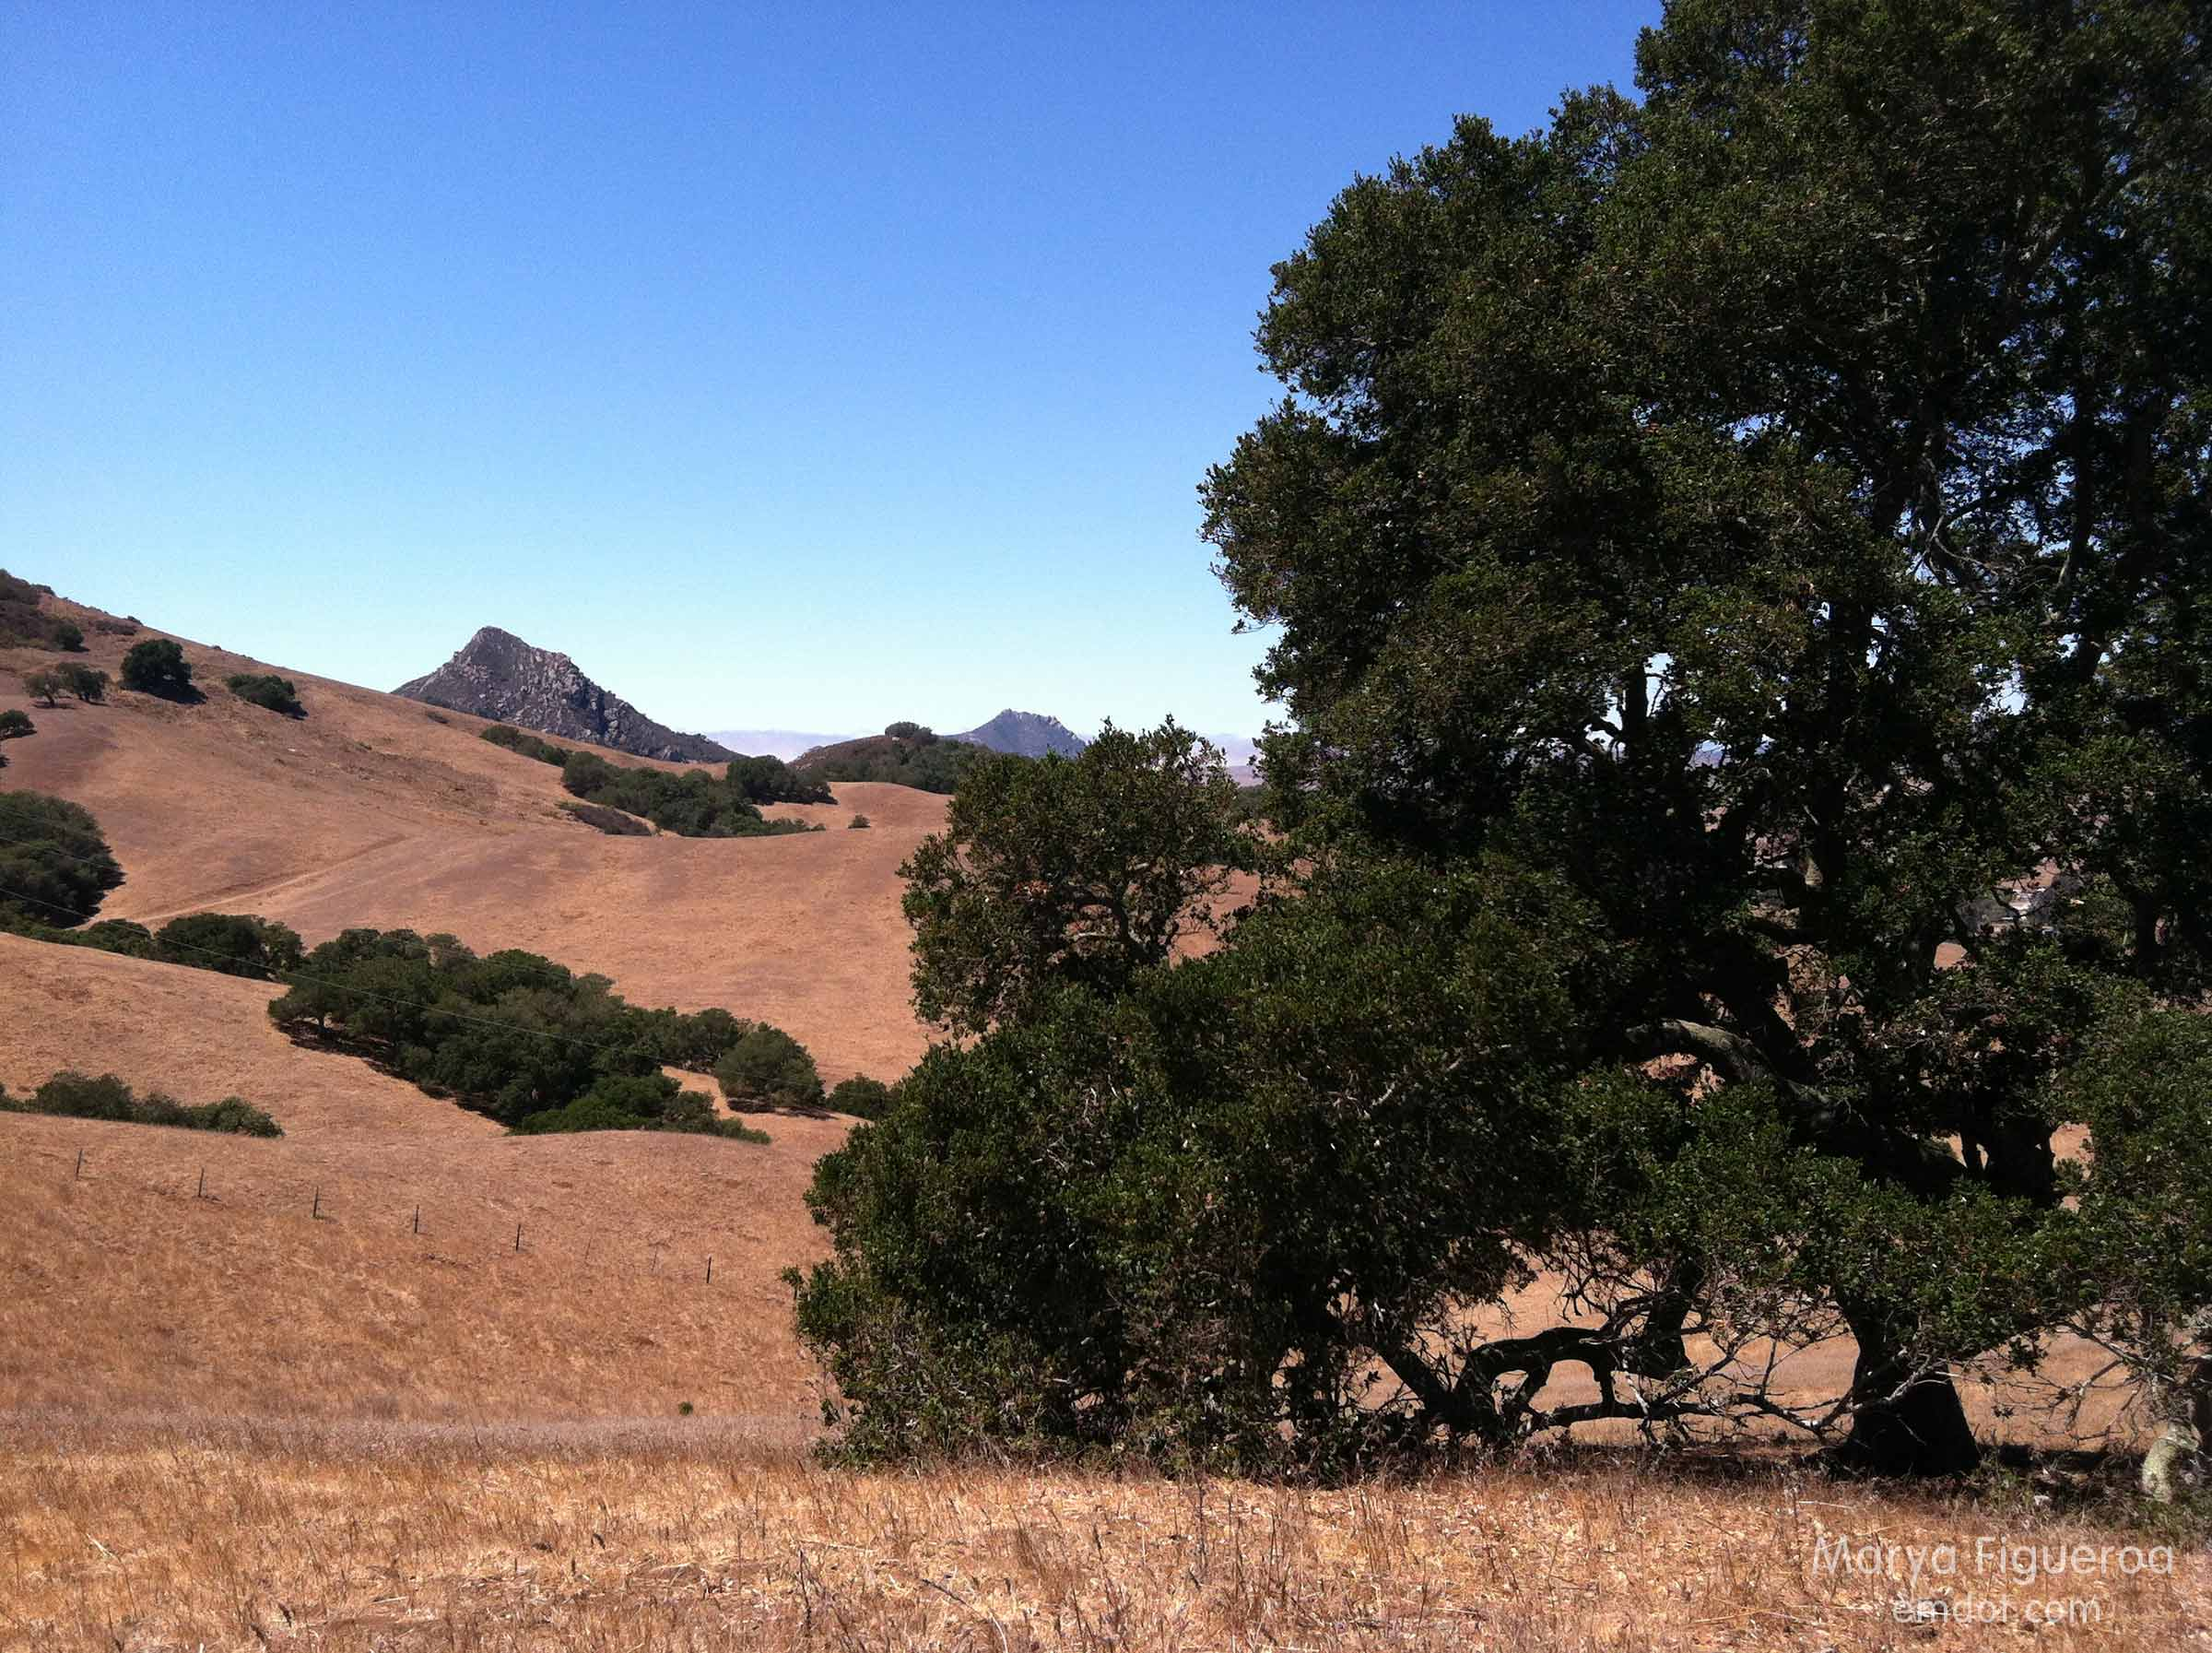 Hillsides, oak tree and cerros